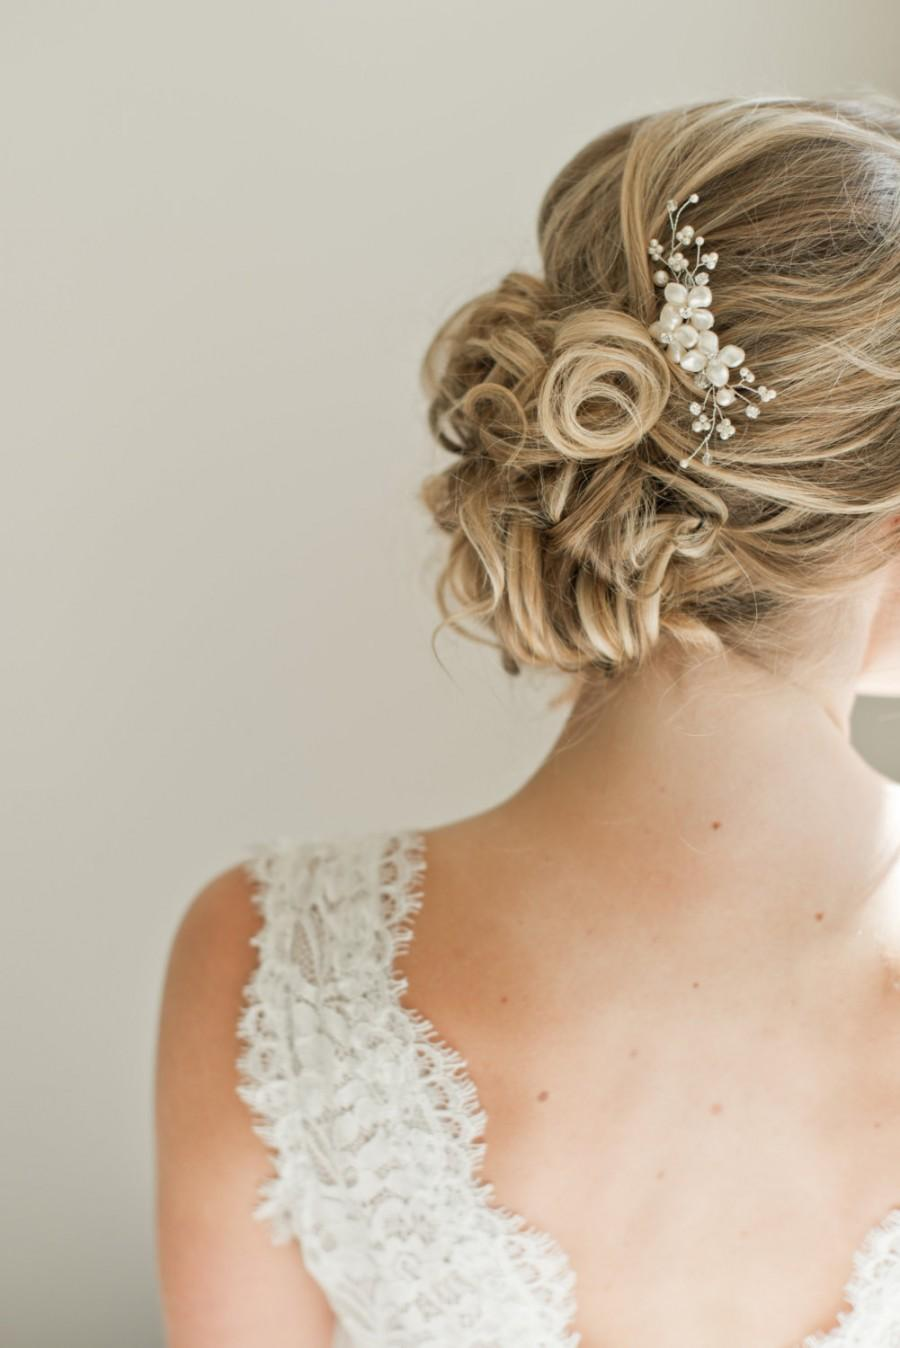 Mariage - Bridal Hair Comb, Bridal Hairpiece, Pearl Hair Comb, Bridal Head Piece, Floral Hair Comb, Floral Hairpiece